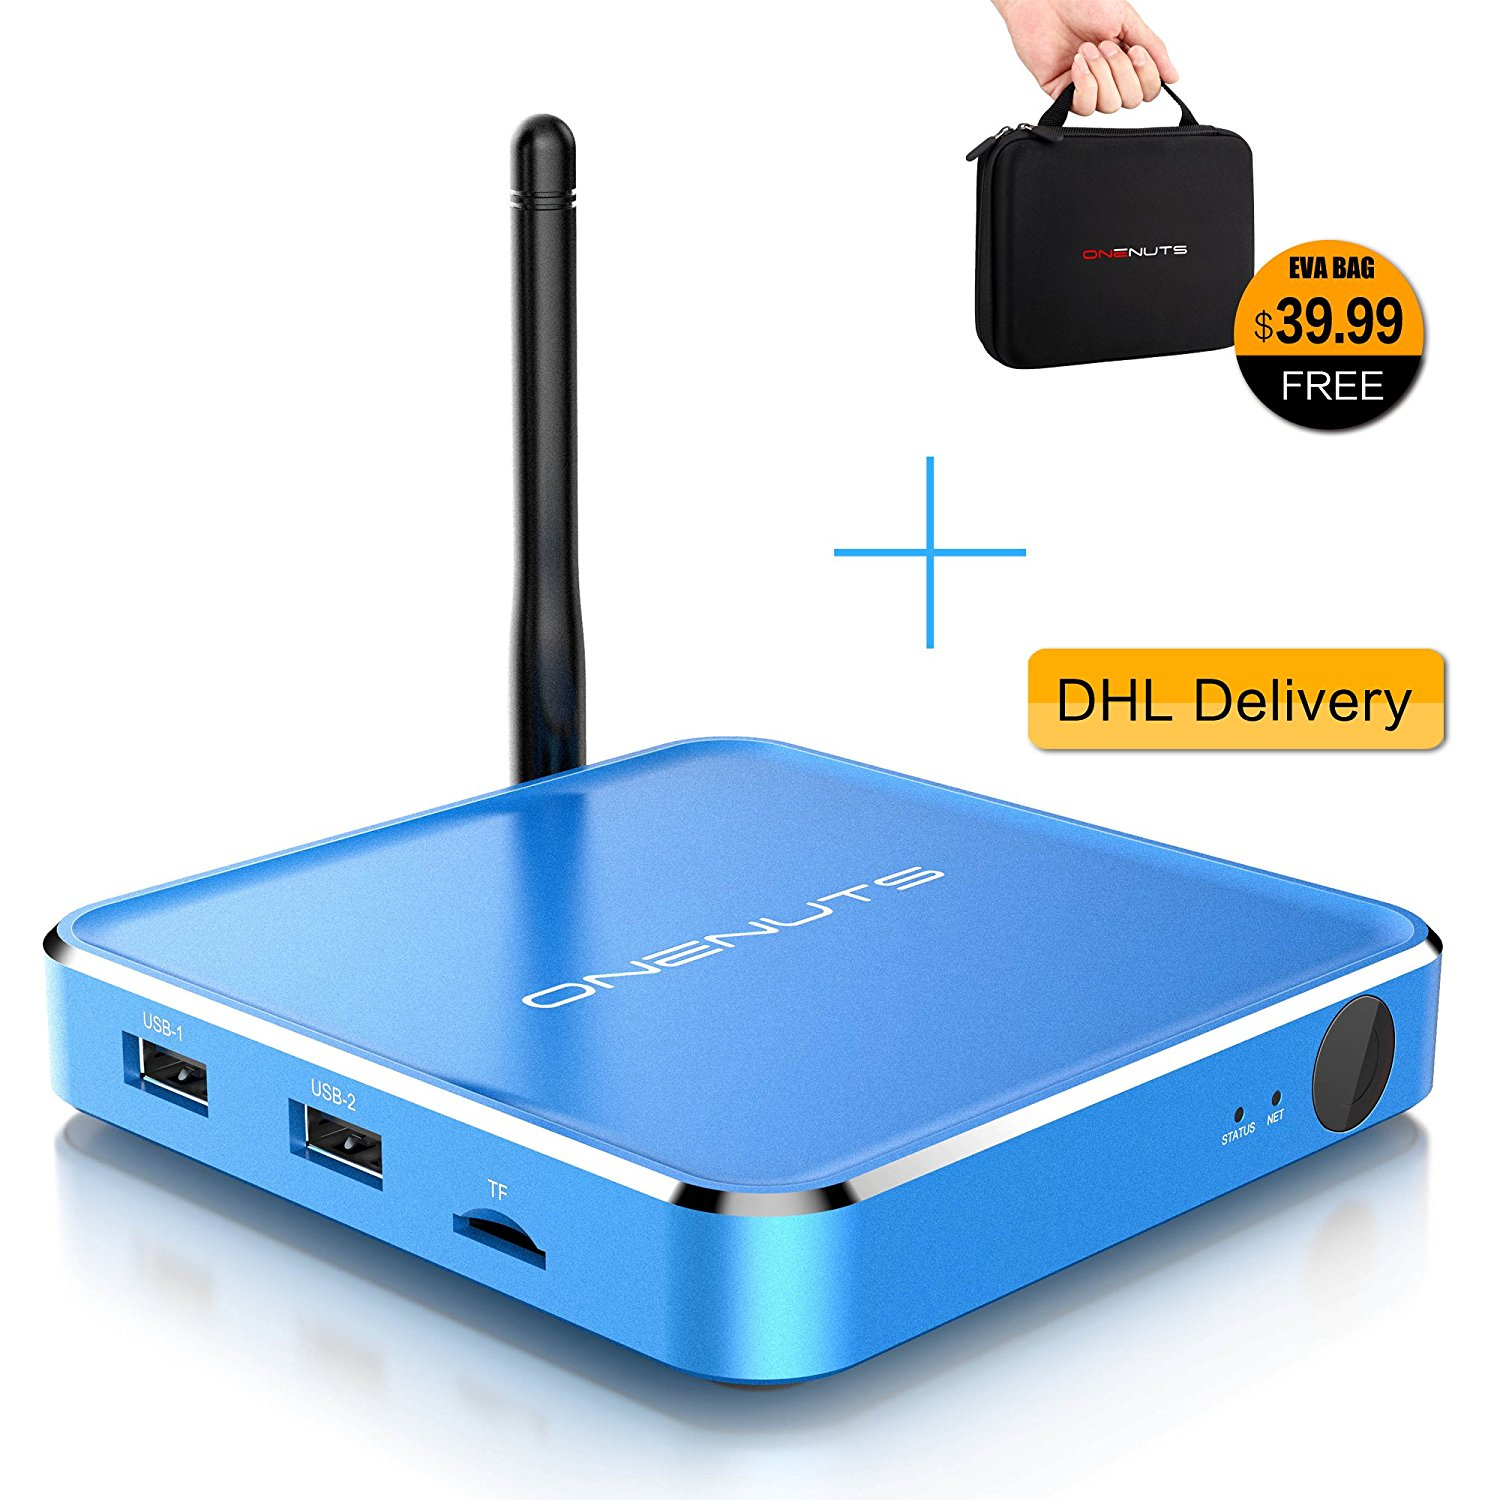 2-in-1 Octa Core S912 Streaming Media Player & Game Android TV Box With Android 6.0 Marshmallow 2G DDR3 16G EMMC Dual-Band AC WIFI support YouTube Netflix Facebook And Many More - Onenuts Nut 1 Blue